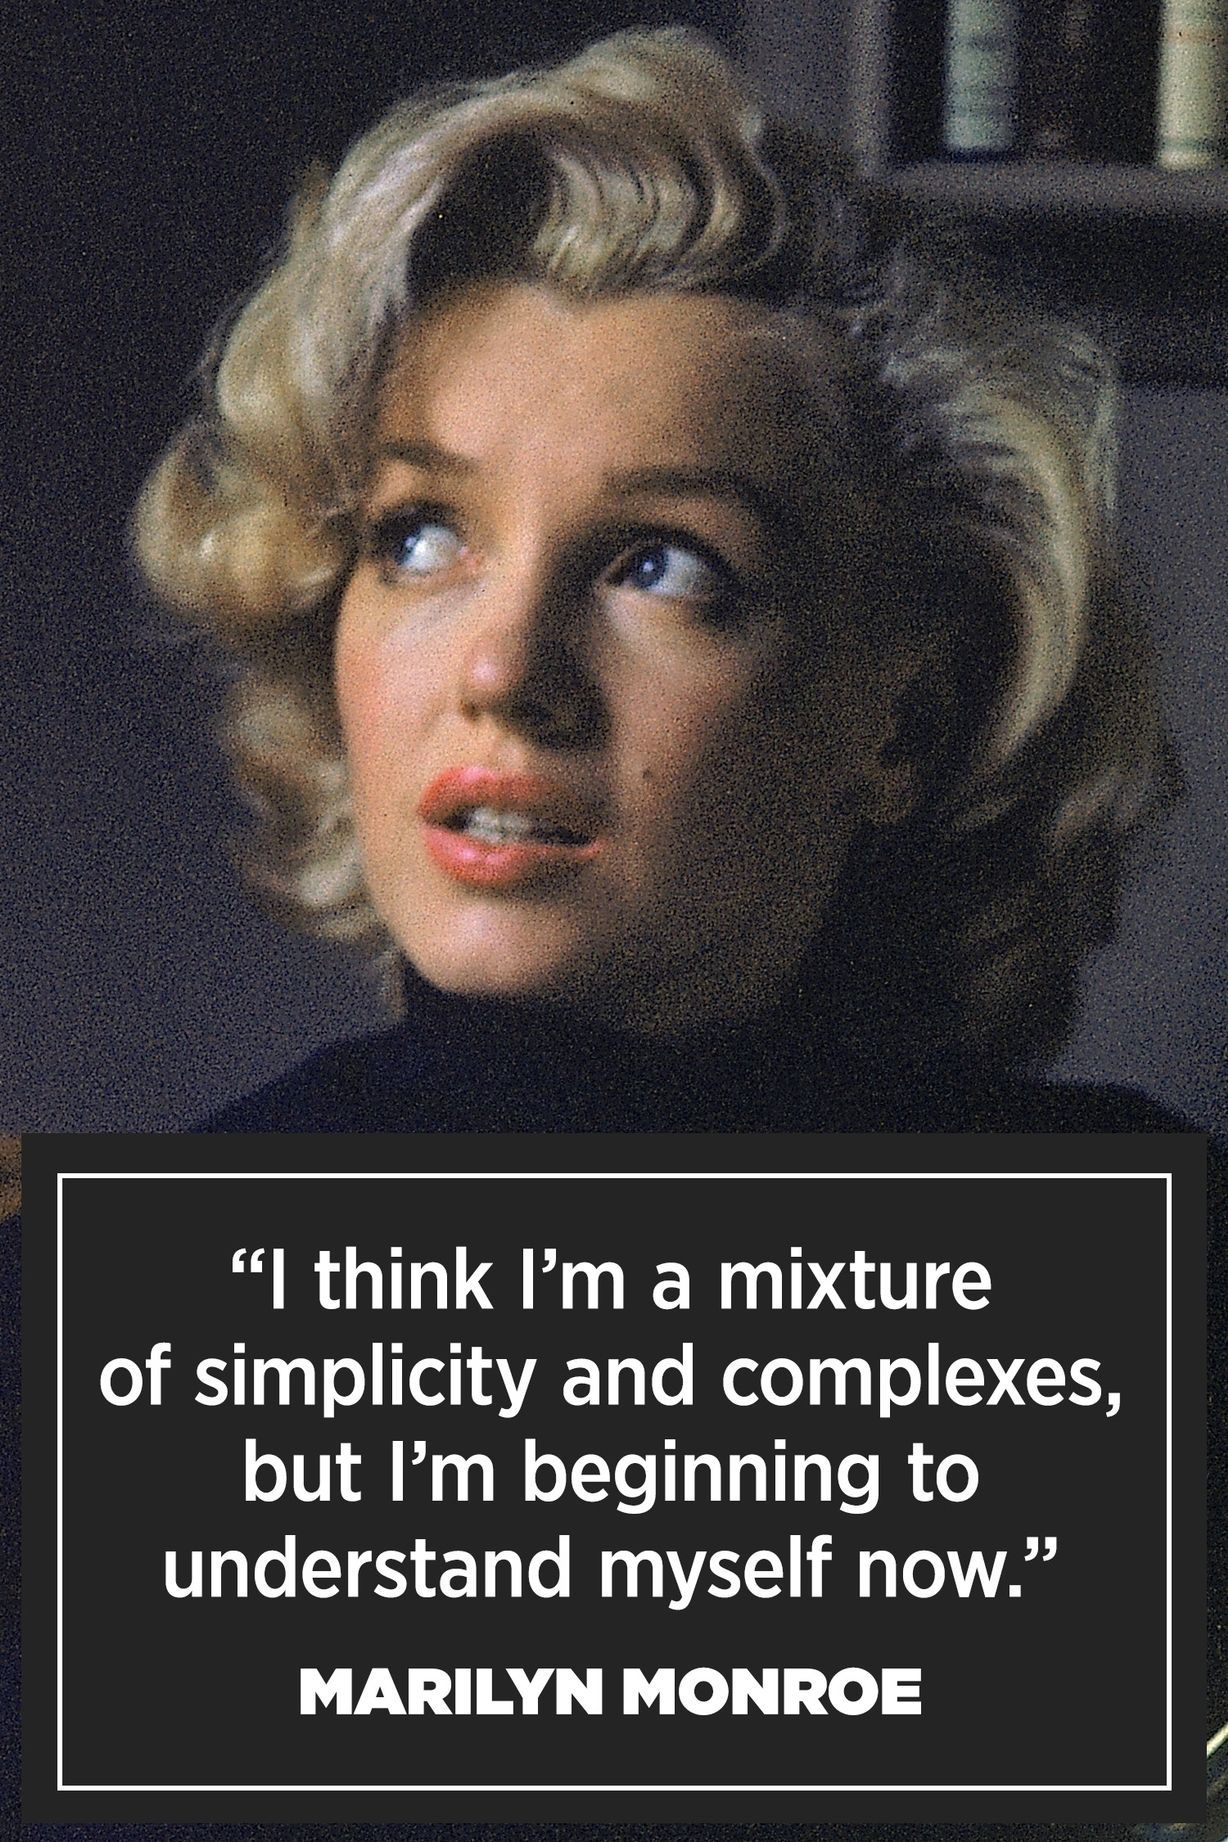 Bring Out The Leather Monroe Zitate Marilyn Monroe Zitate